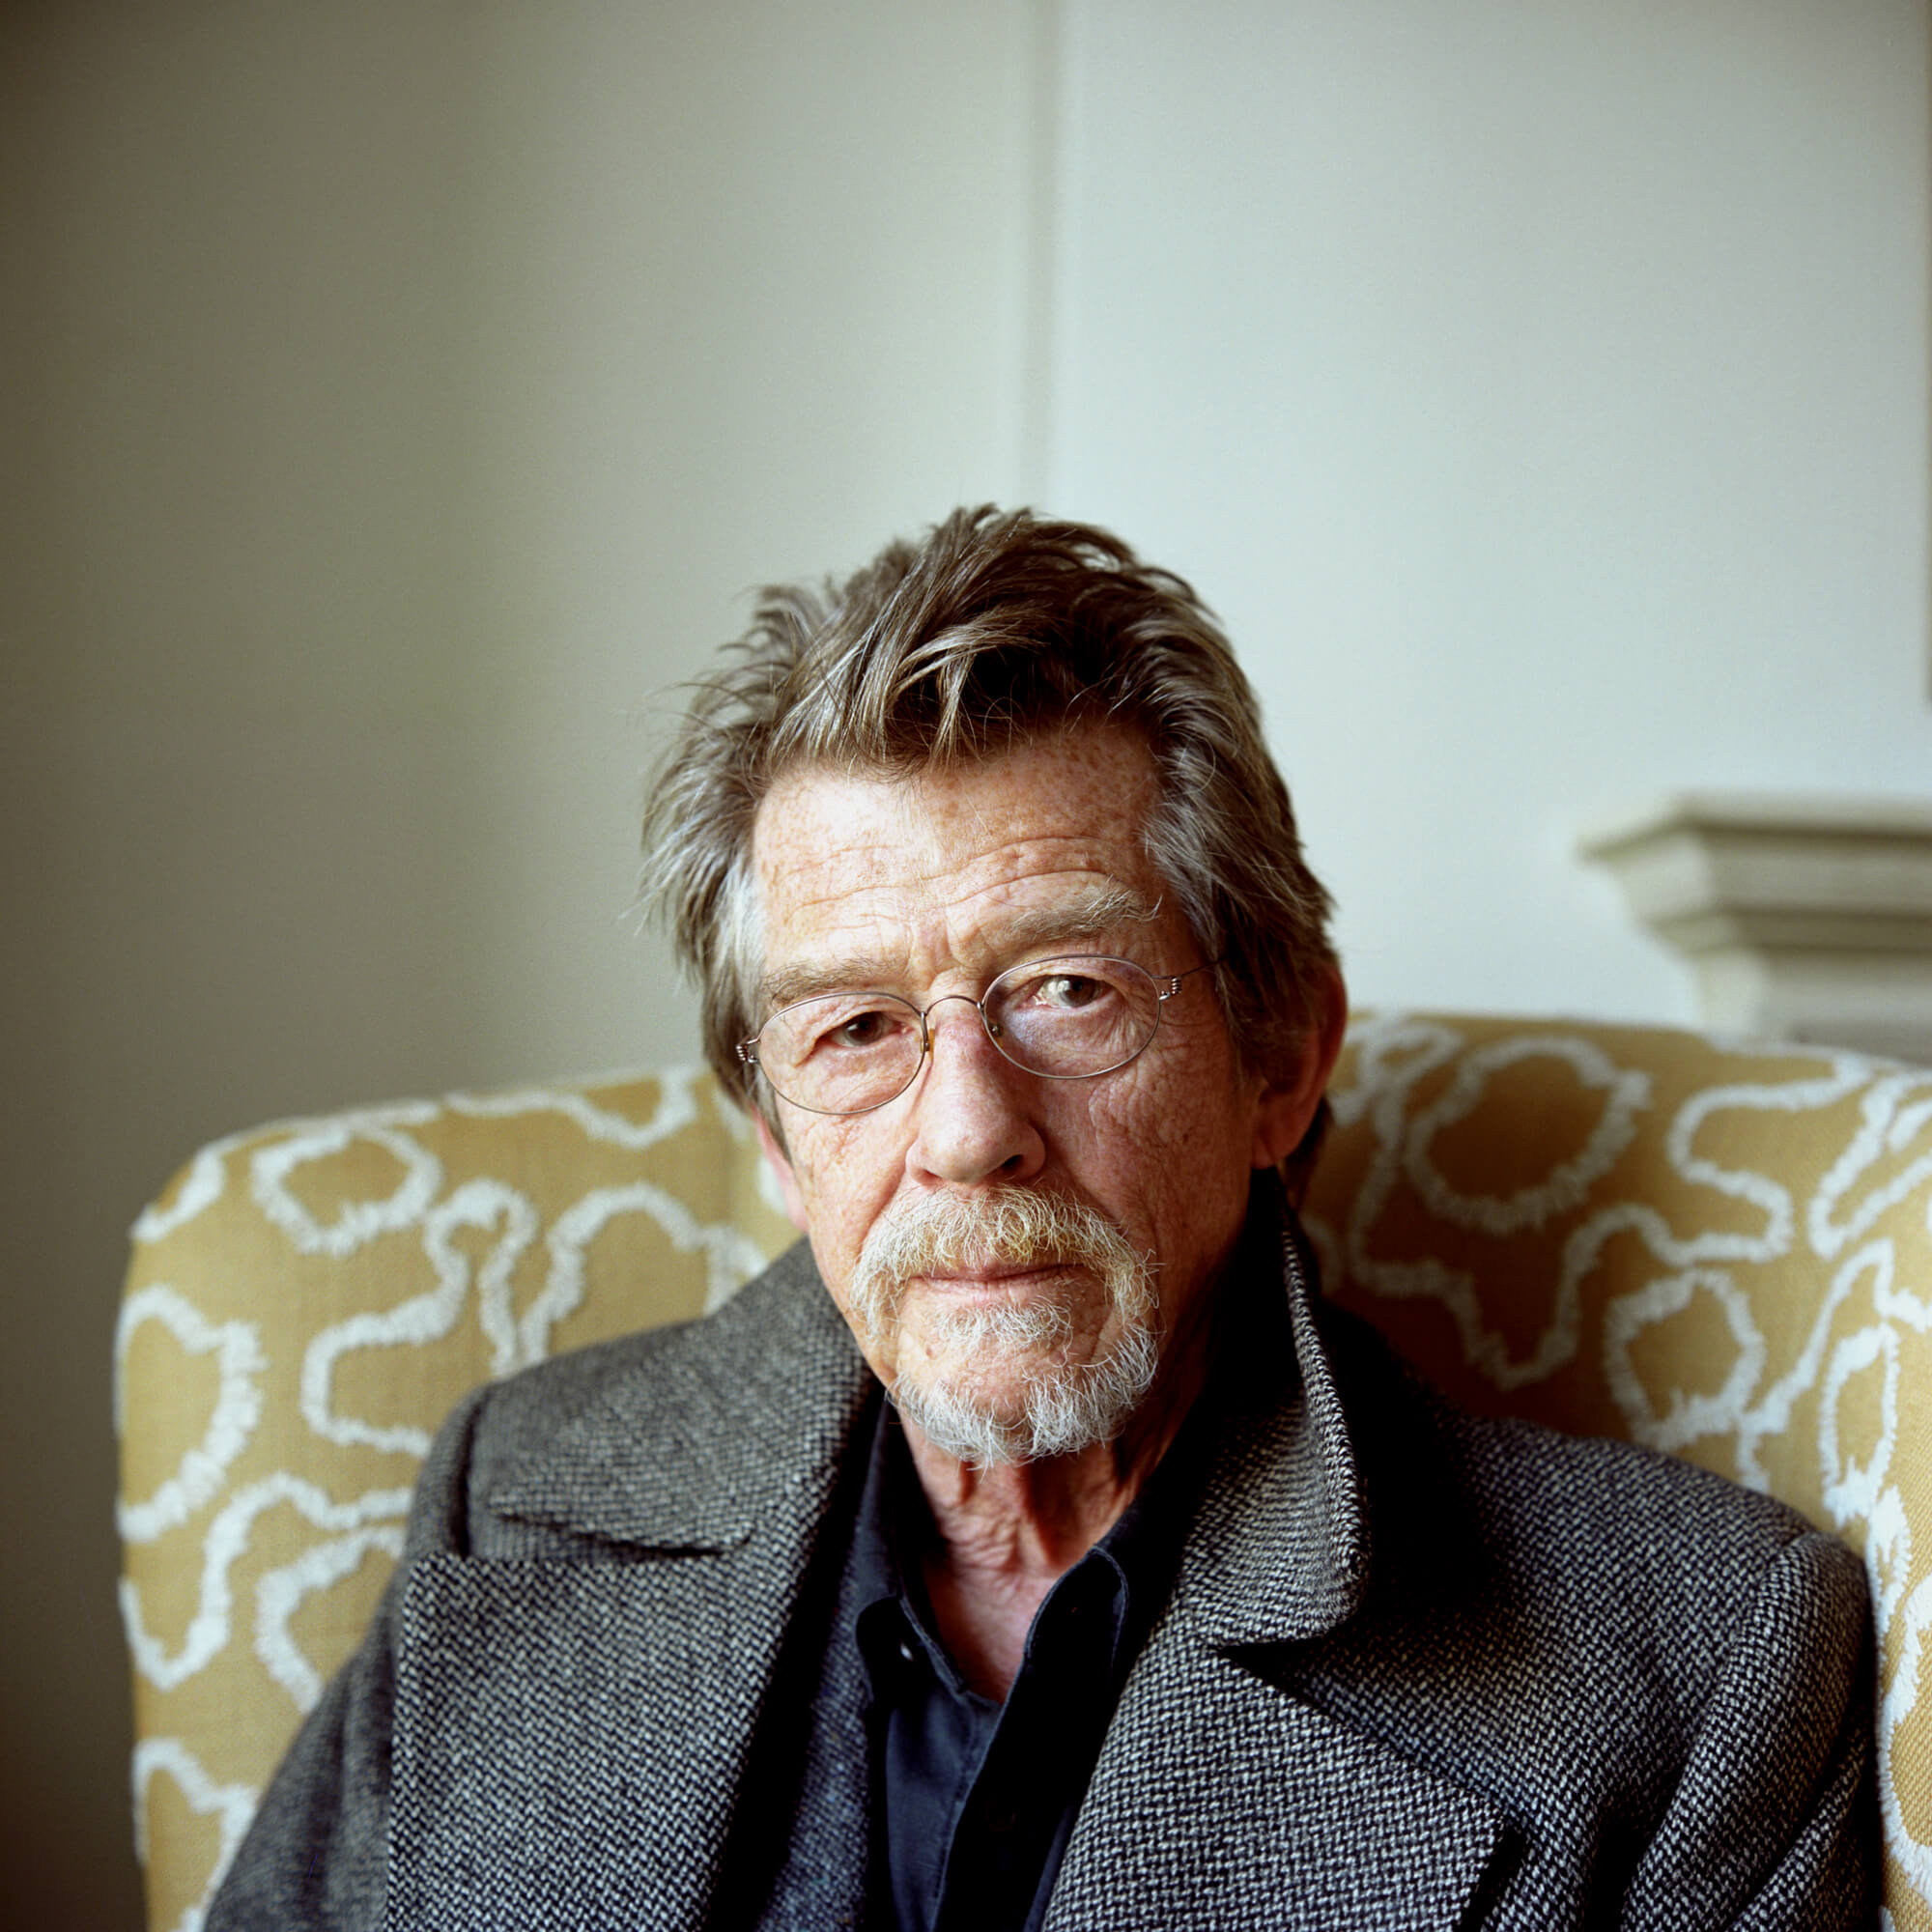 Toby Glanville, John Hurt portrait the south west collective of photography ltd